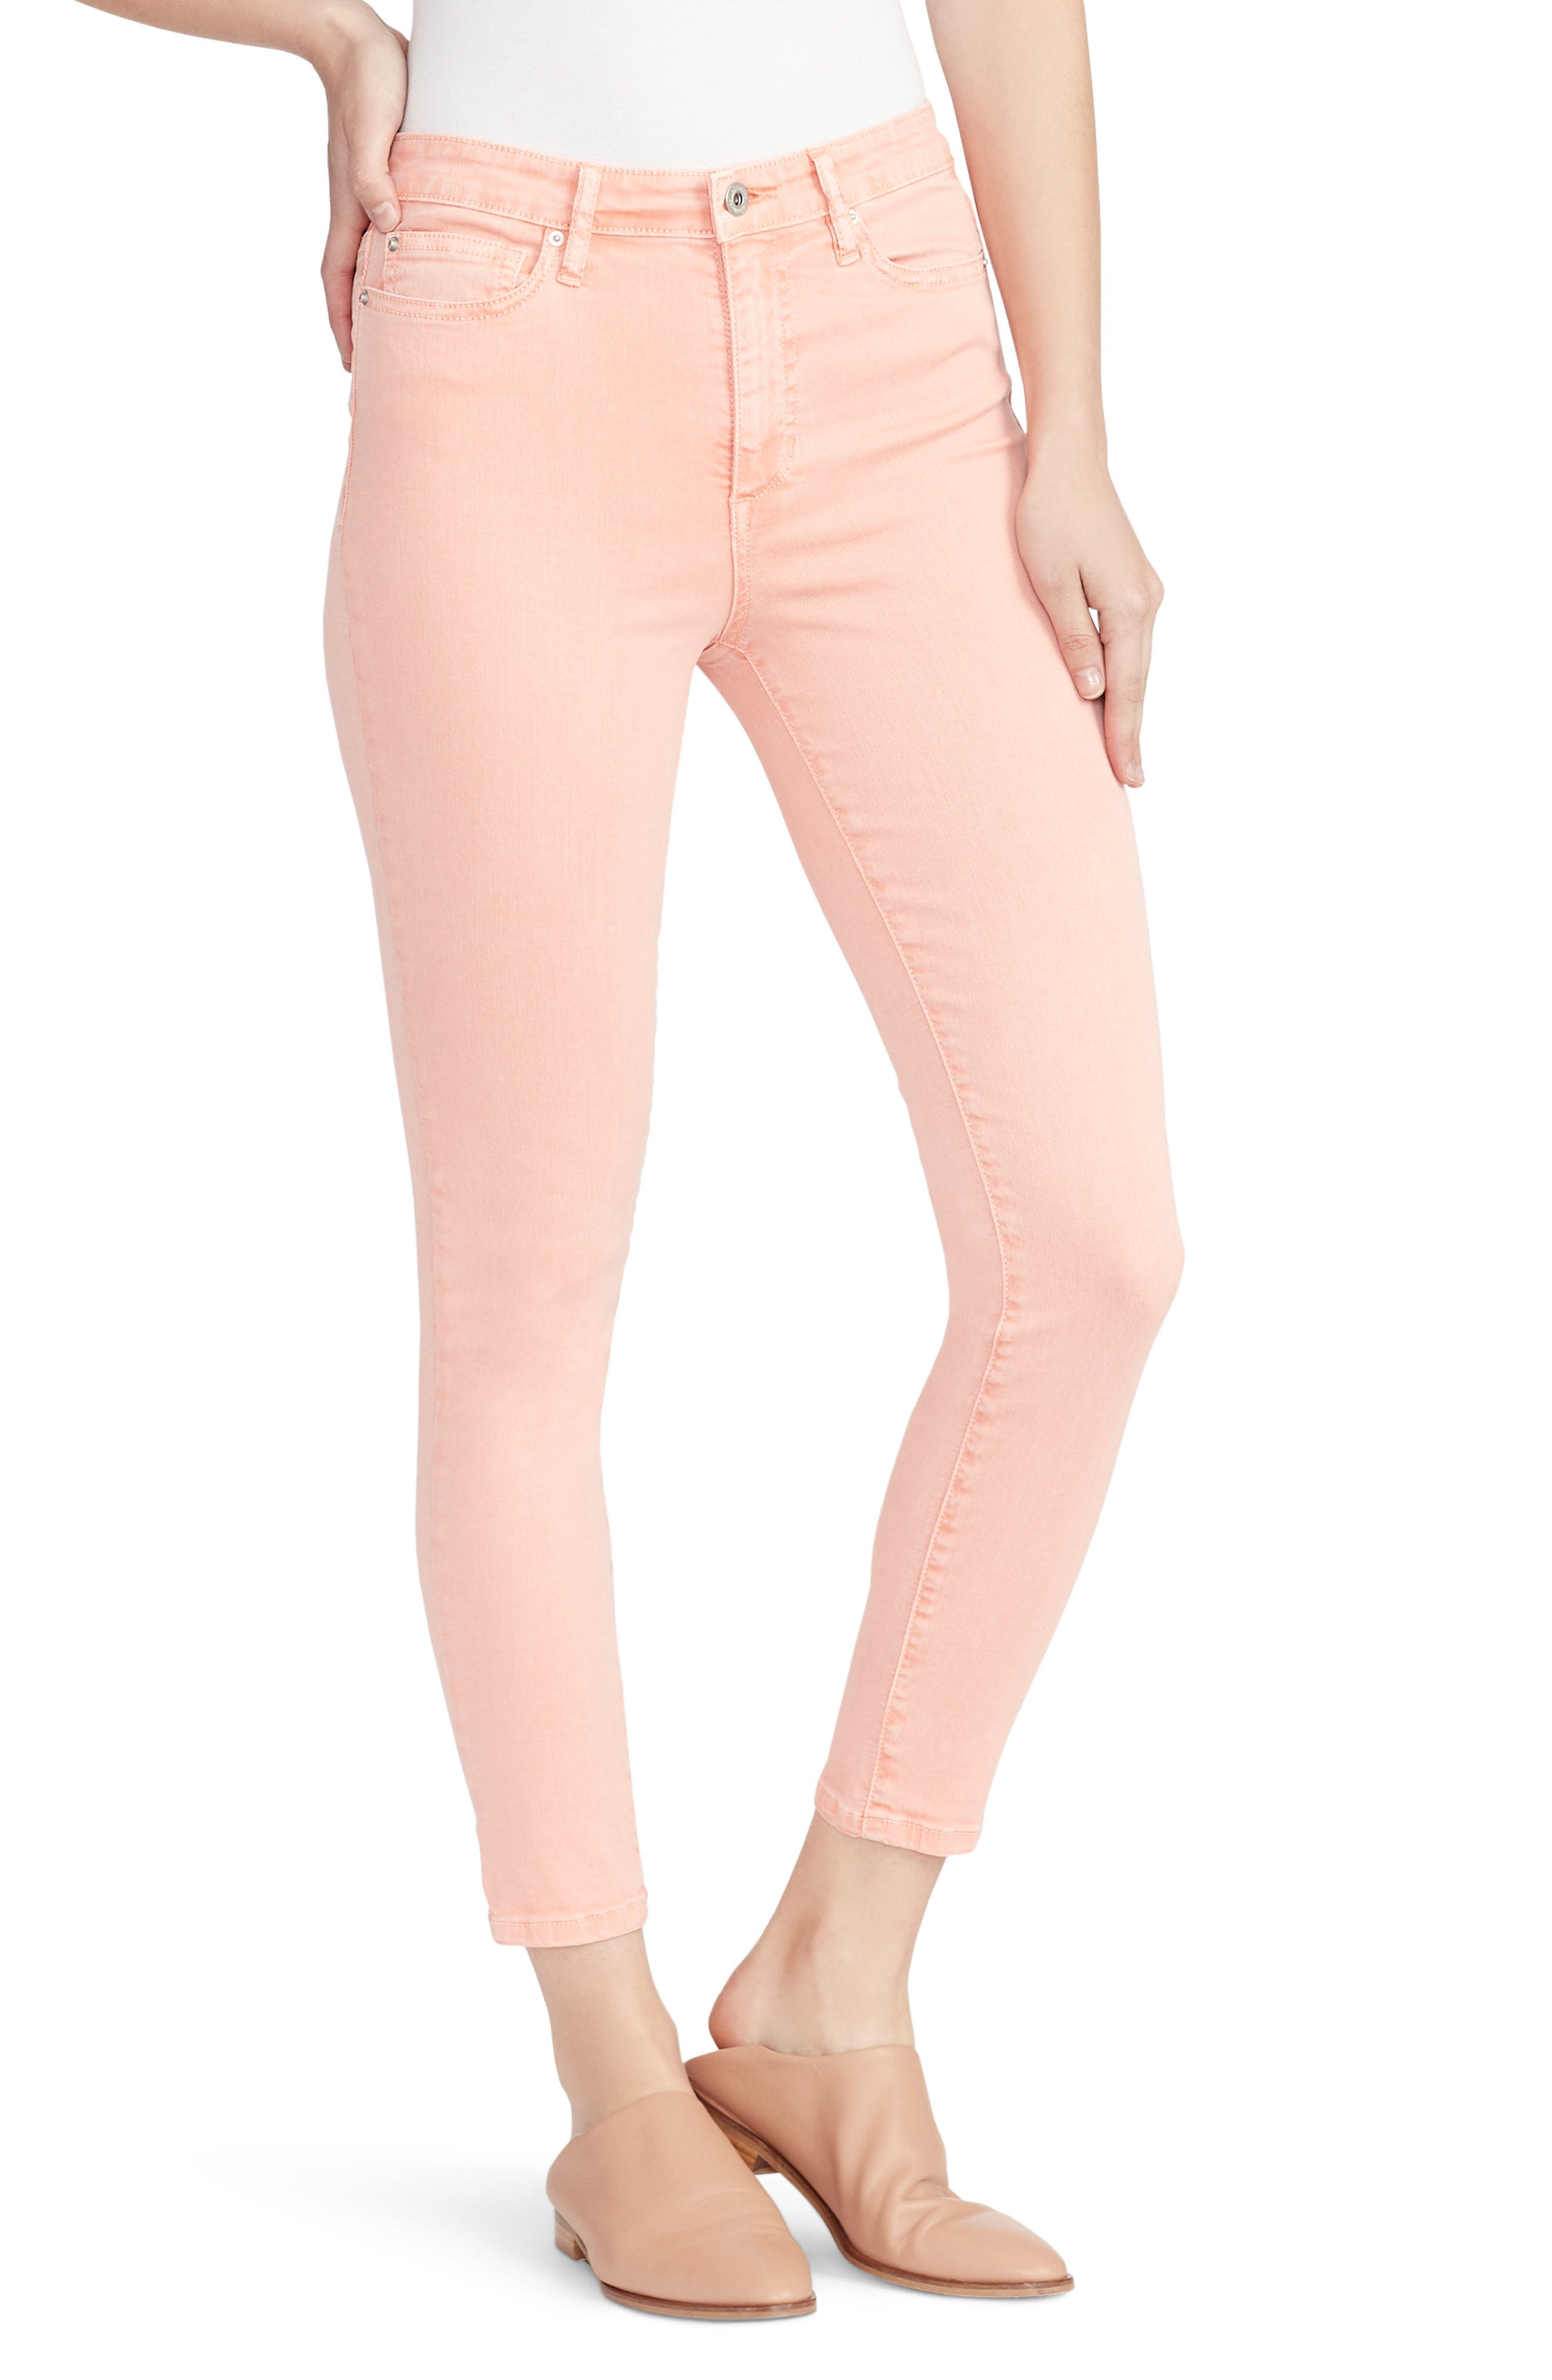 ELLA MOSS, High Waist Ankle Skinny Jeans, Main thumbnail 1, color, PEACH BUD